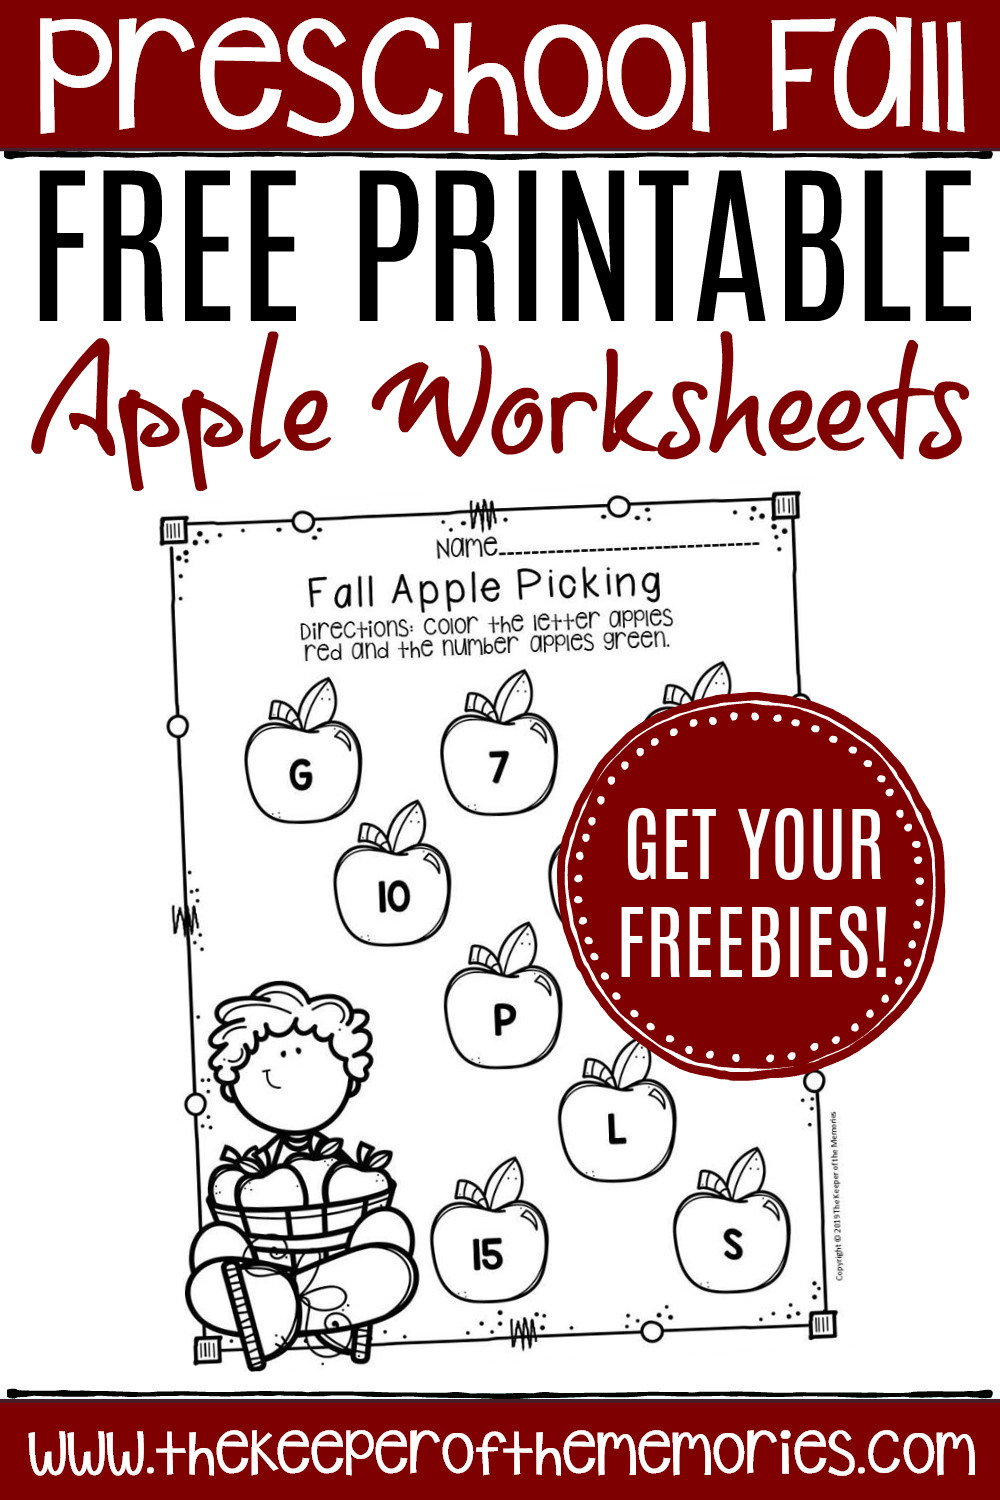 Free Printable Apple Worksheets Free Printable Apple Worksheets for Preschoolers